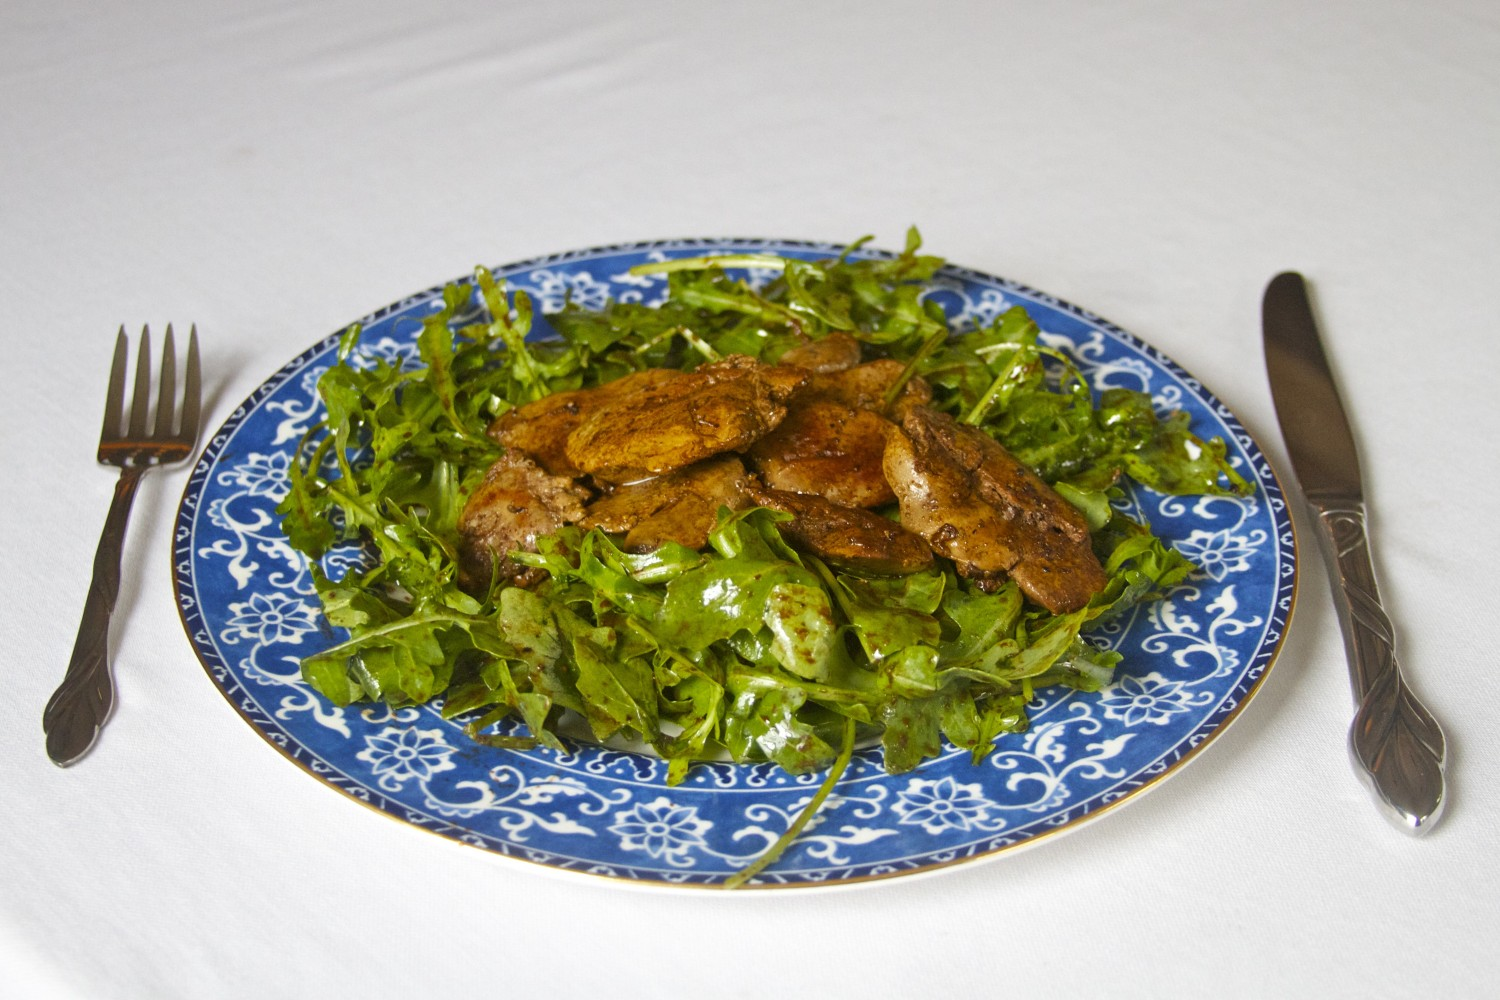 Chicken liver salad